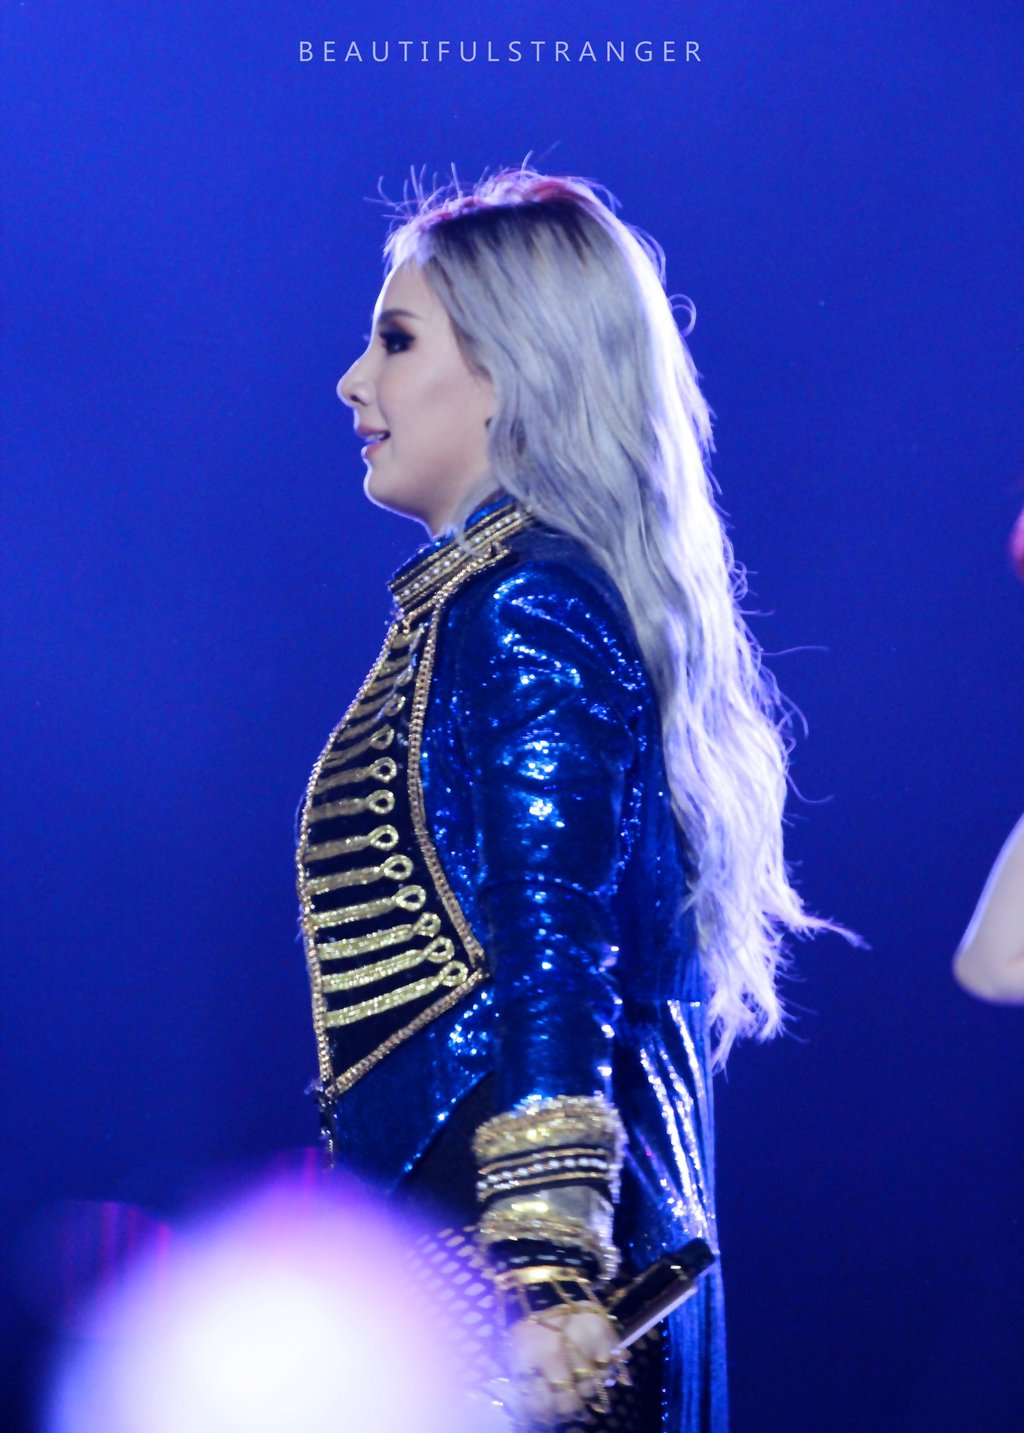 Cl Android Iphone Wallpaper Page 5 Asiachan Kpop Jpop Image Board